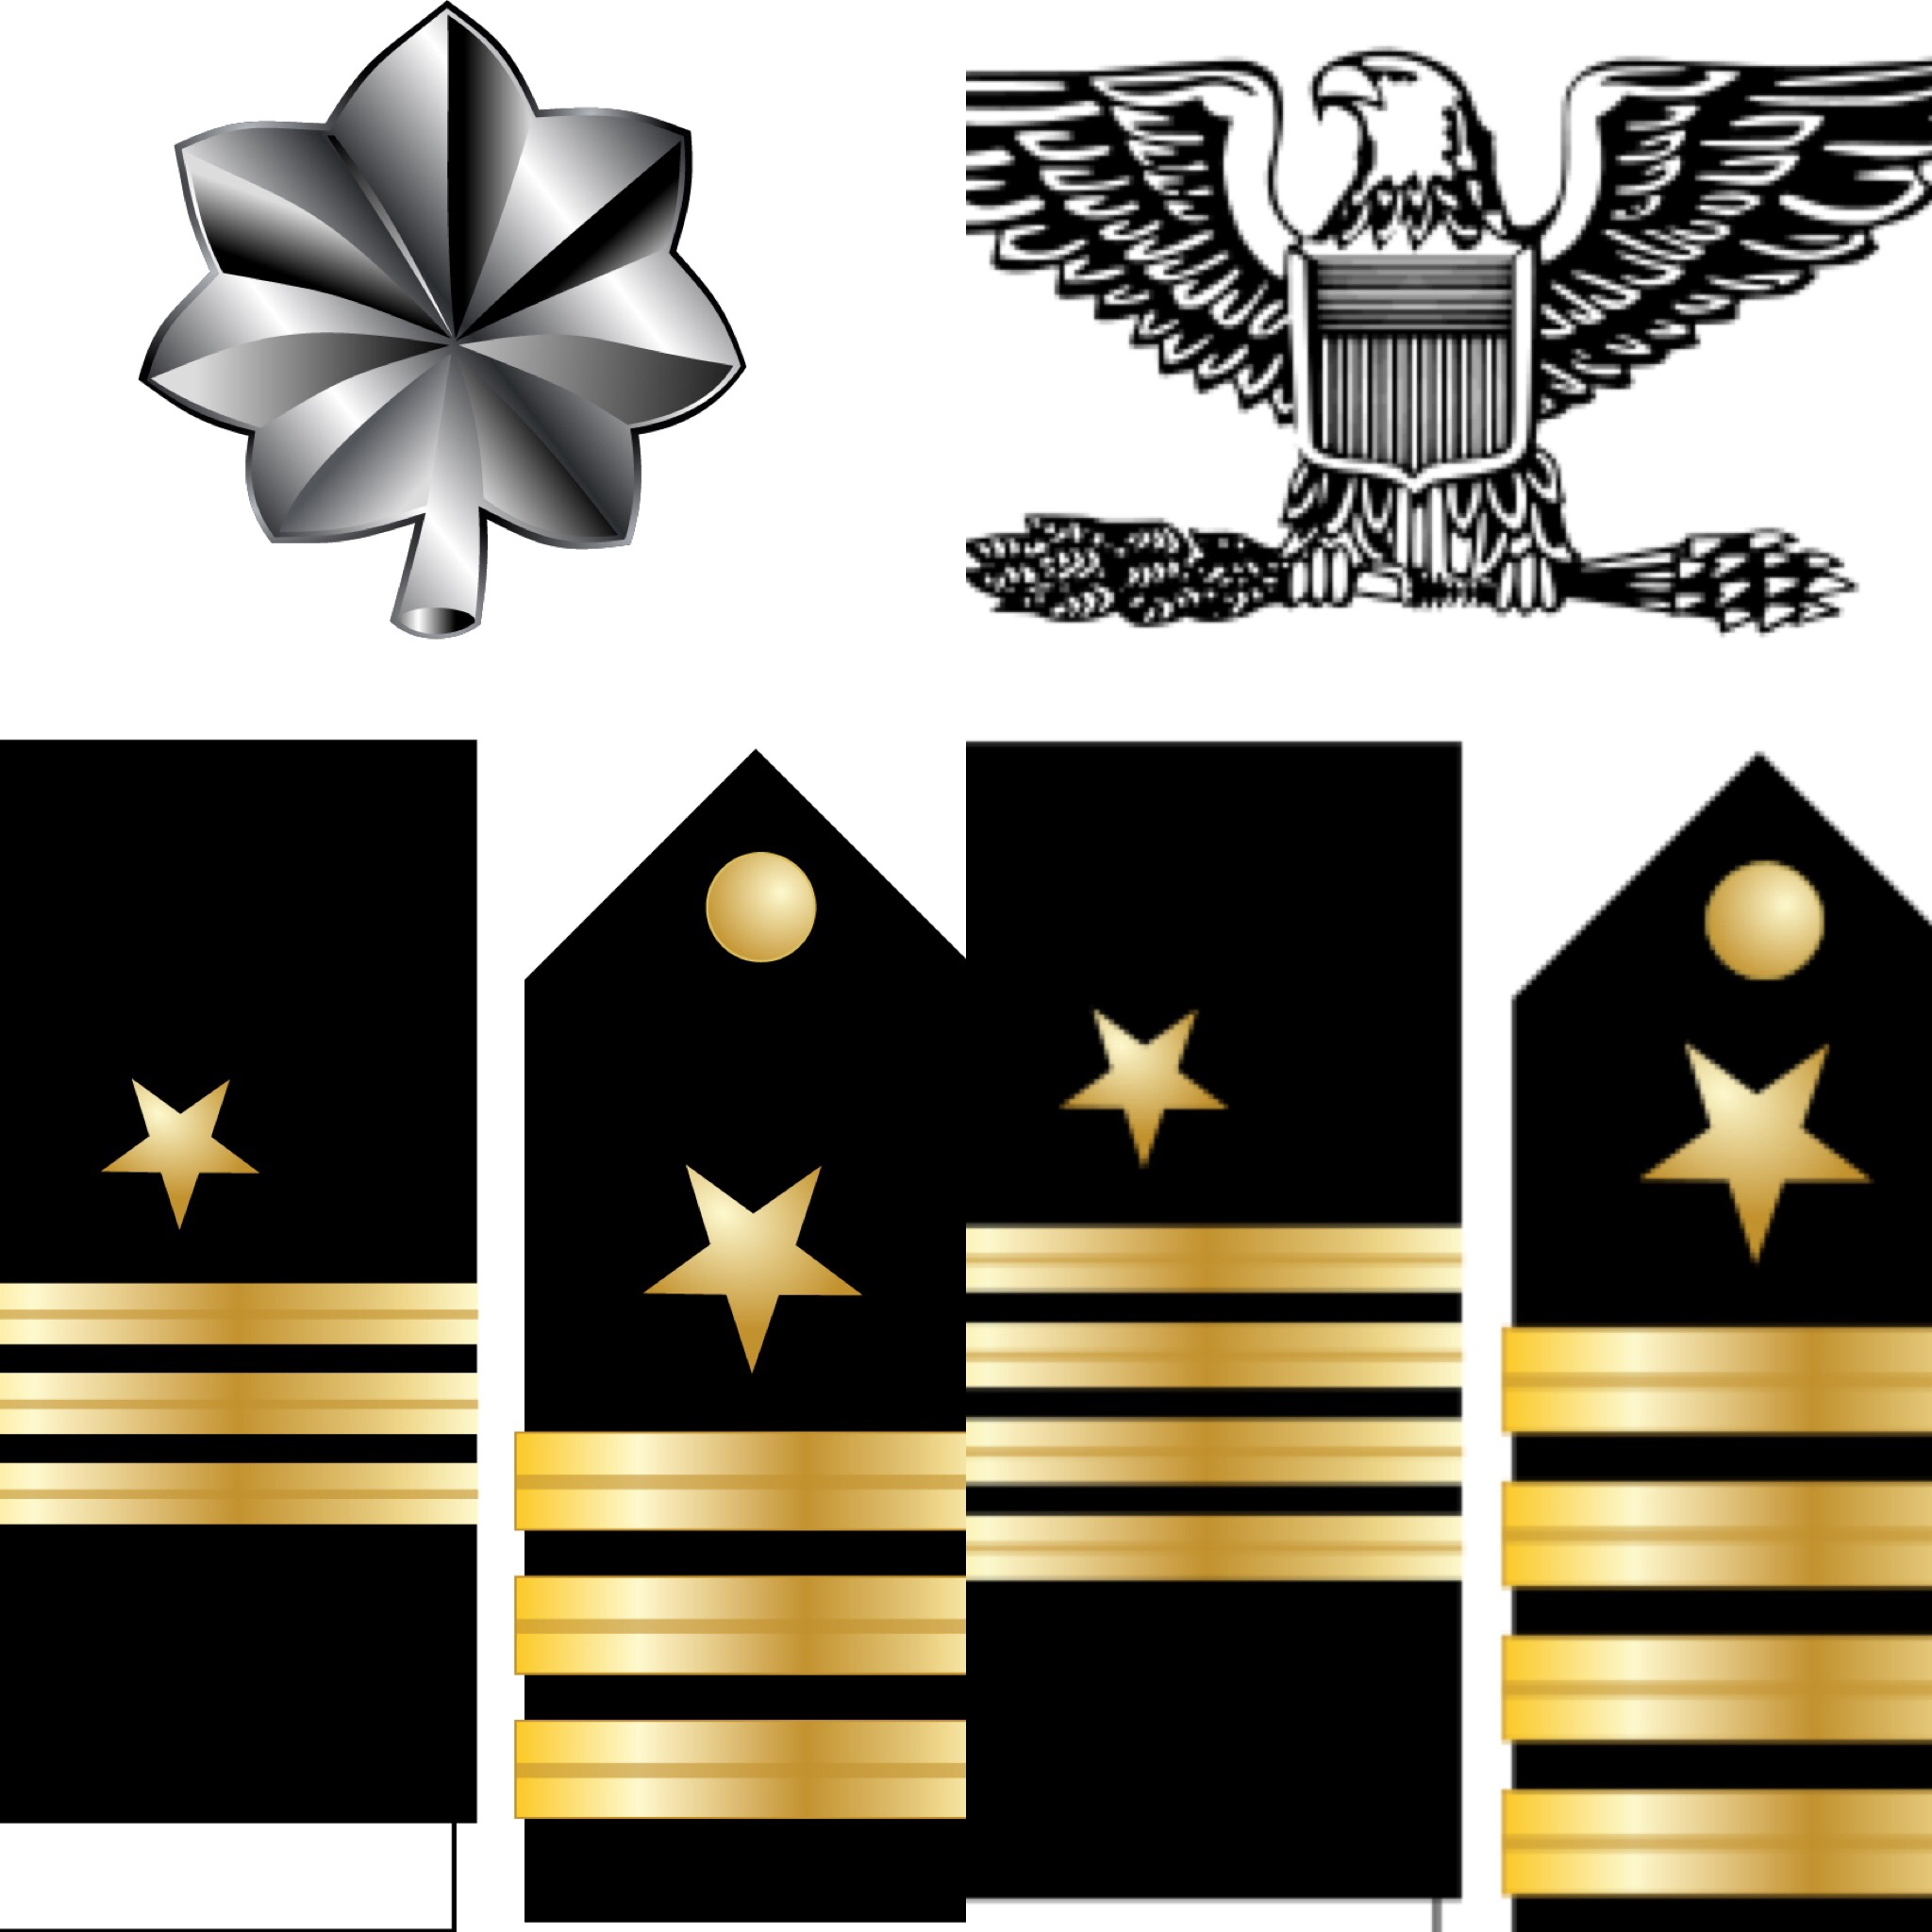 Navy Will Force Retirement On Poor Performing Senior Captains